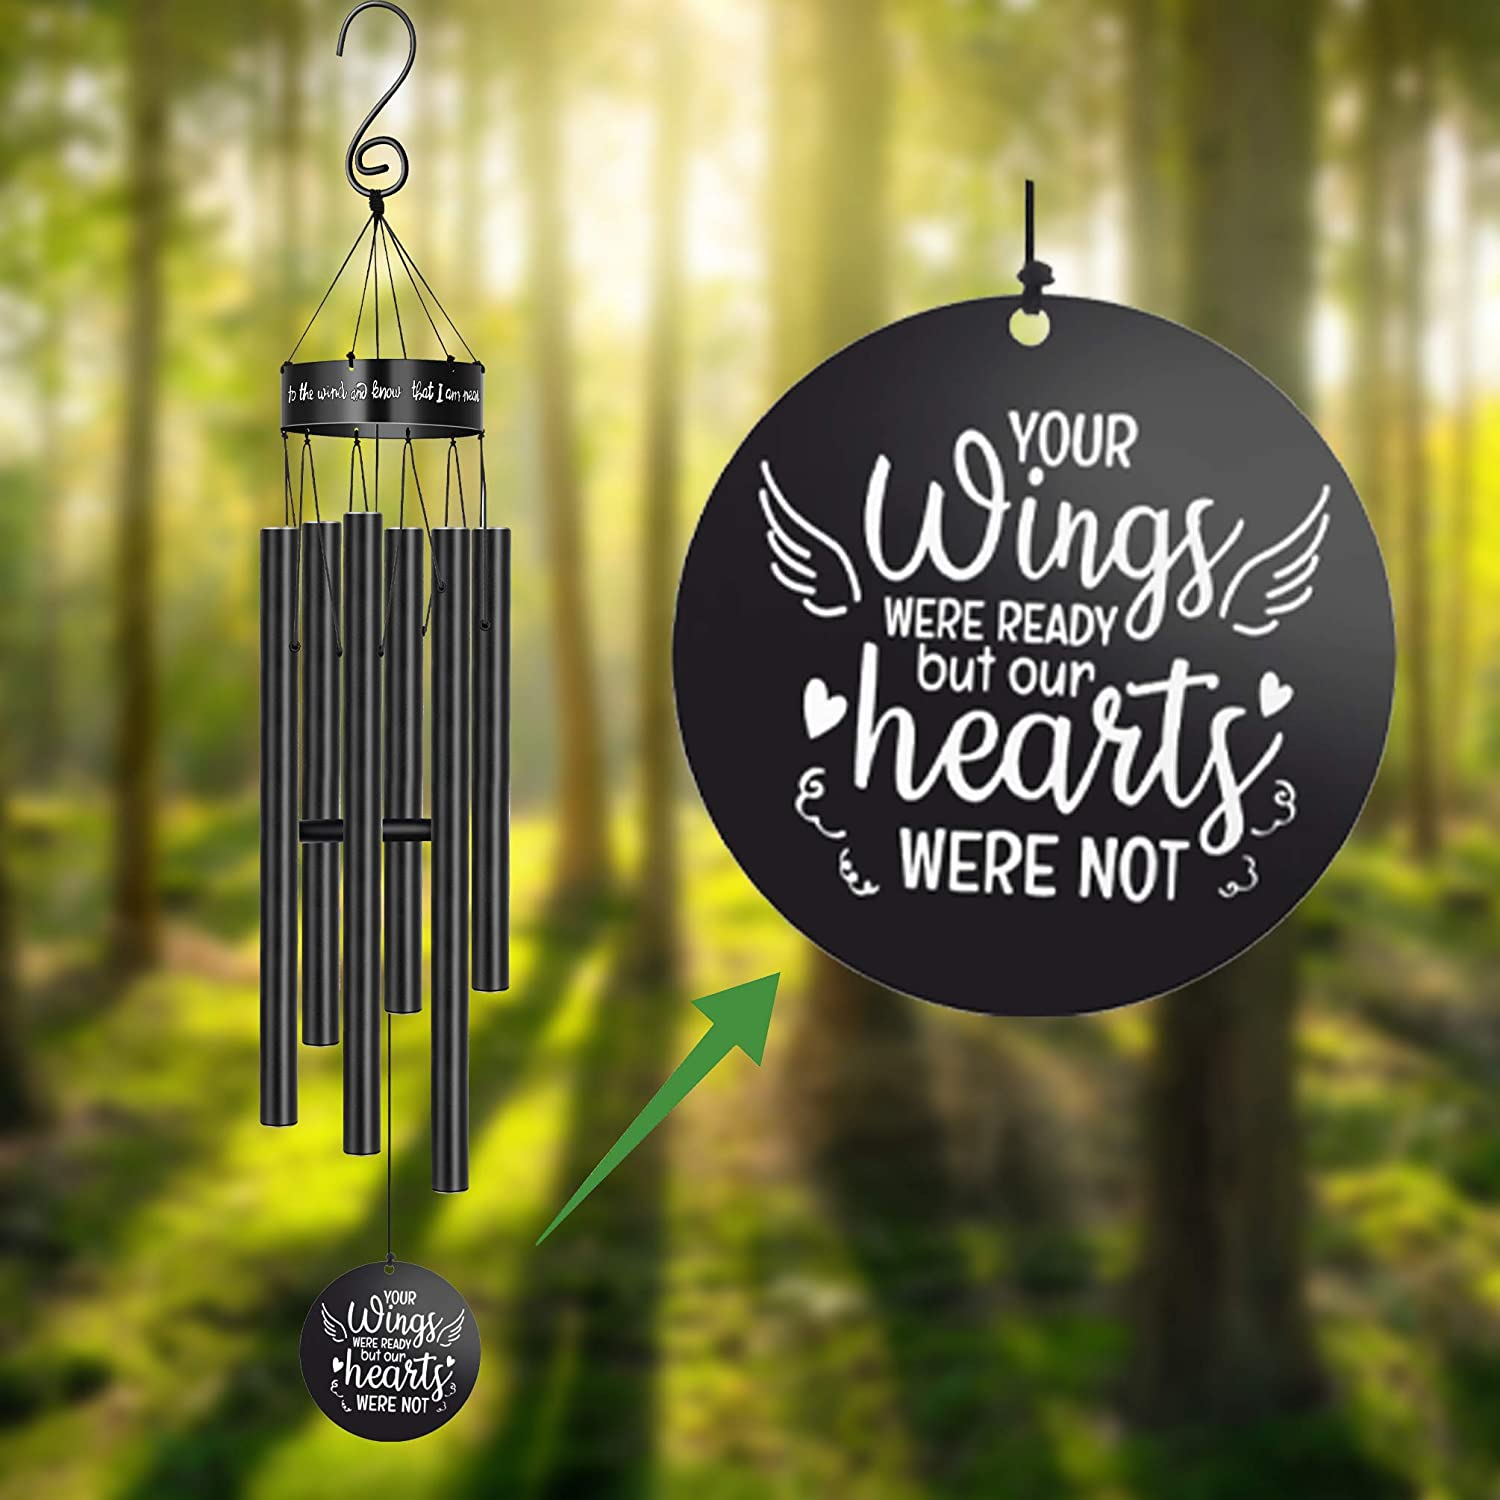 Sympathy Wind Chimes Outside for Loss of Loved One Rememberance Gifts Loss of Dad Mom Wife Husband Daughter Large Angel Windchimes Garden Patio Home Déco Your Wings Were Ready but Our Heart Was Not